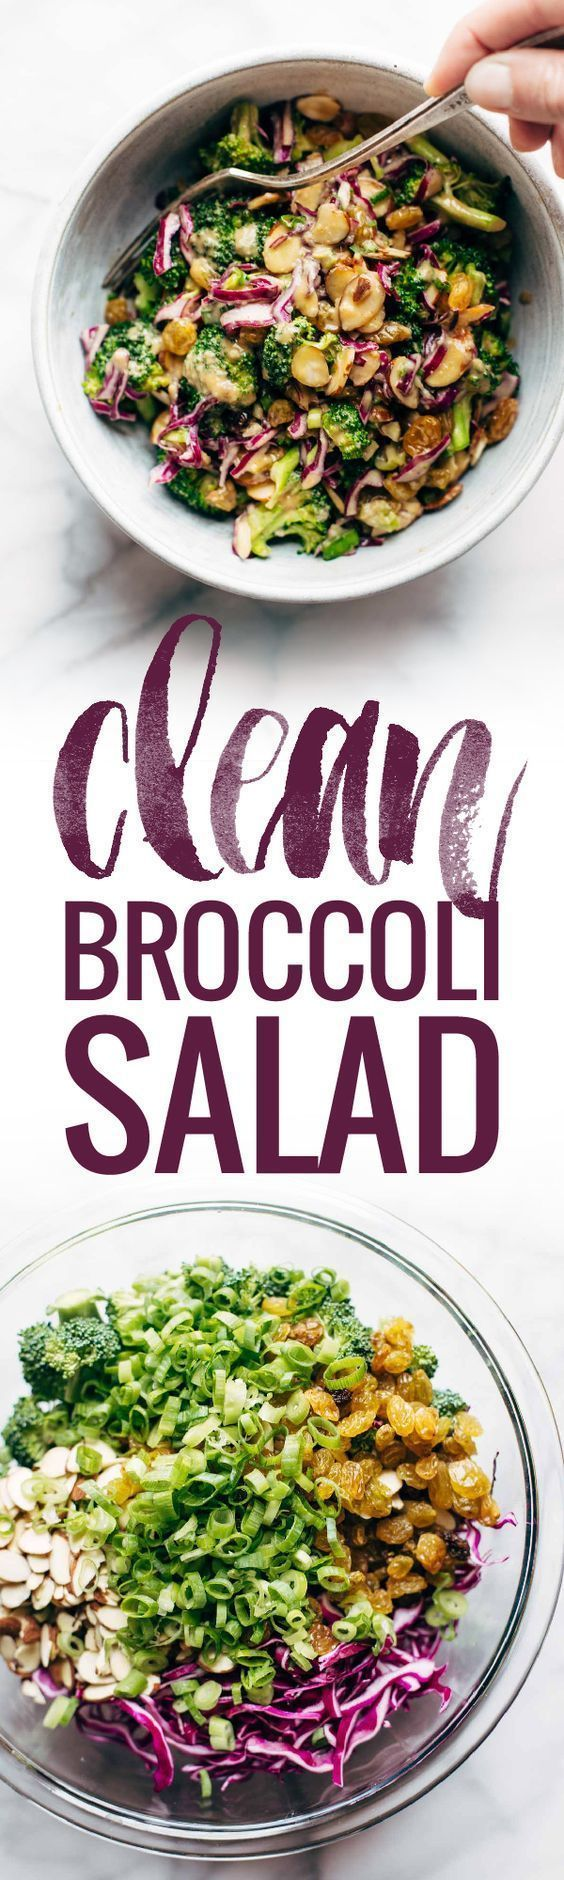 CLEAN Broccoli Salad - non-mayo-based vegan goodness! with purple cabbage, raisins, almonds, green onions, and a creamy almond butter dressing. seriously yummy! | http://pinchofyum.com